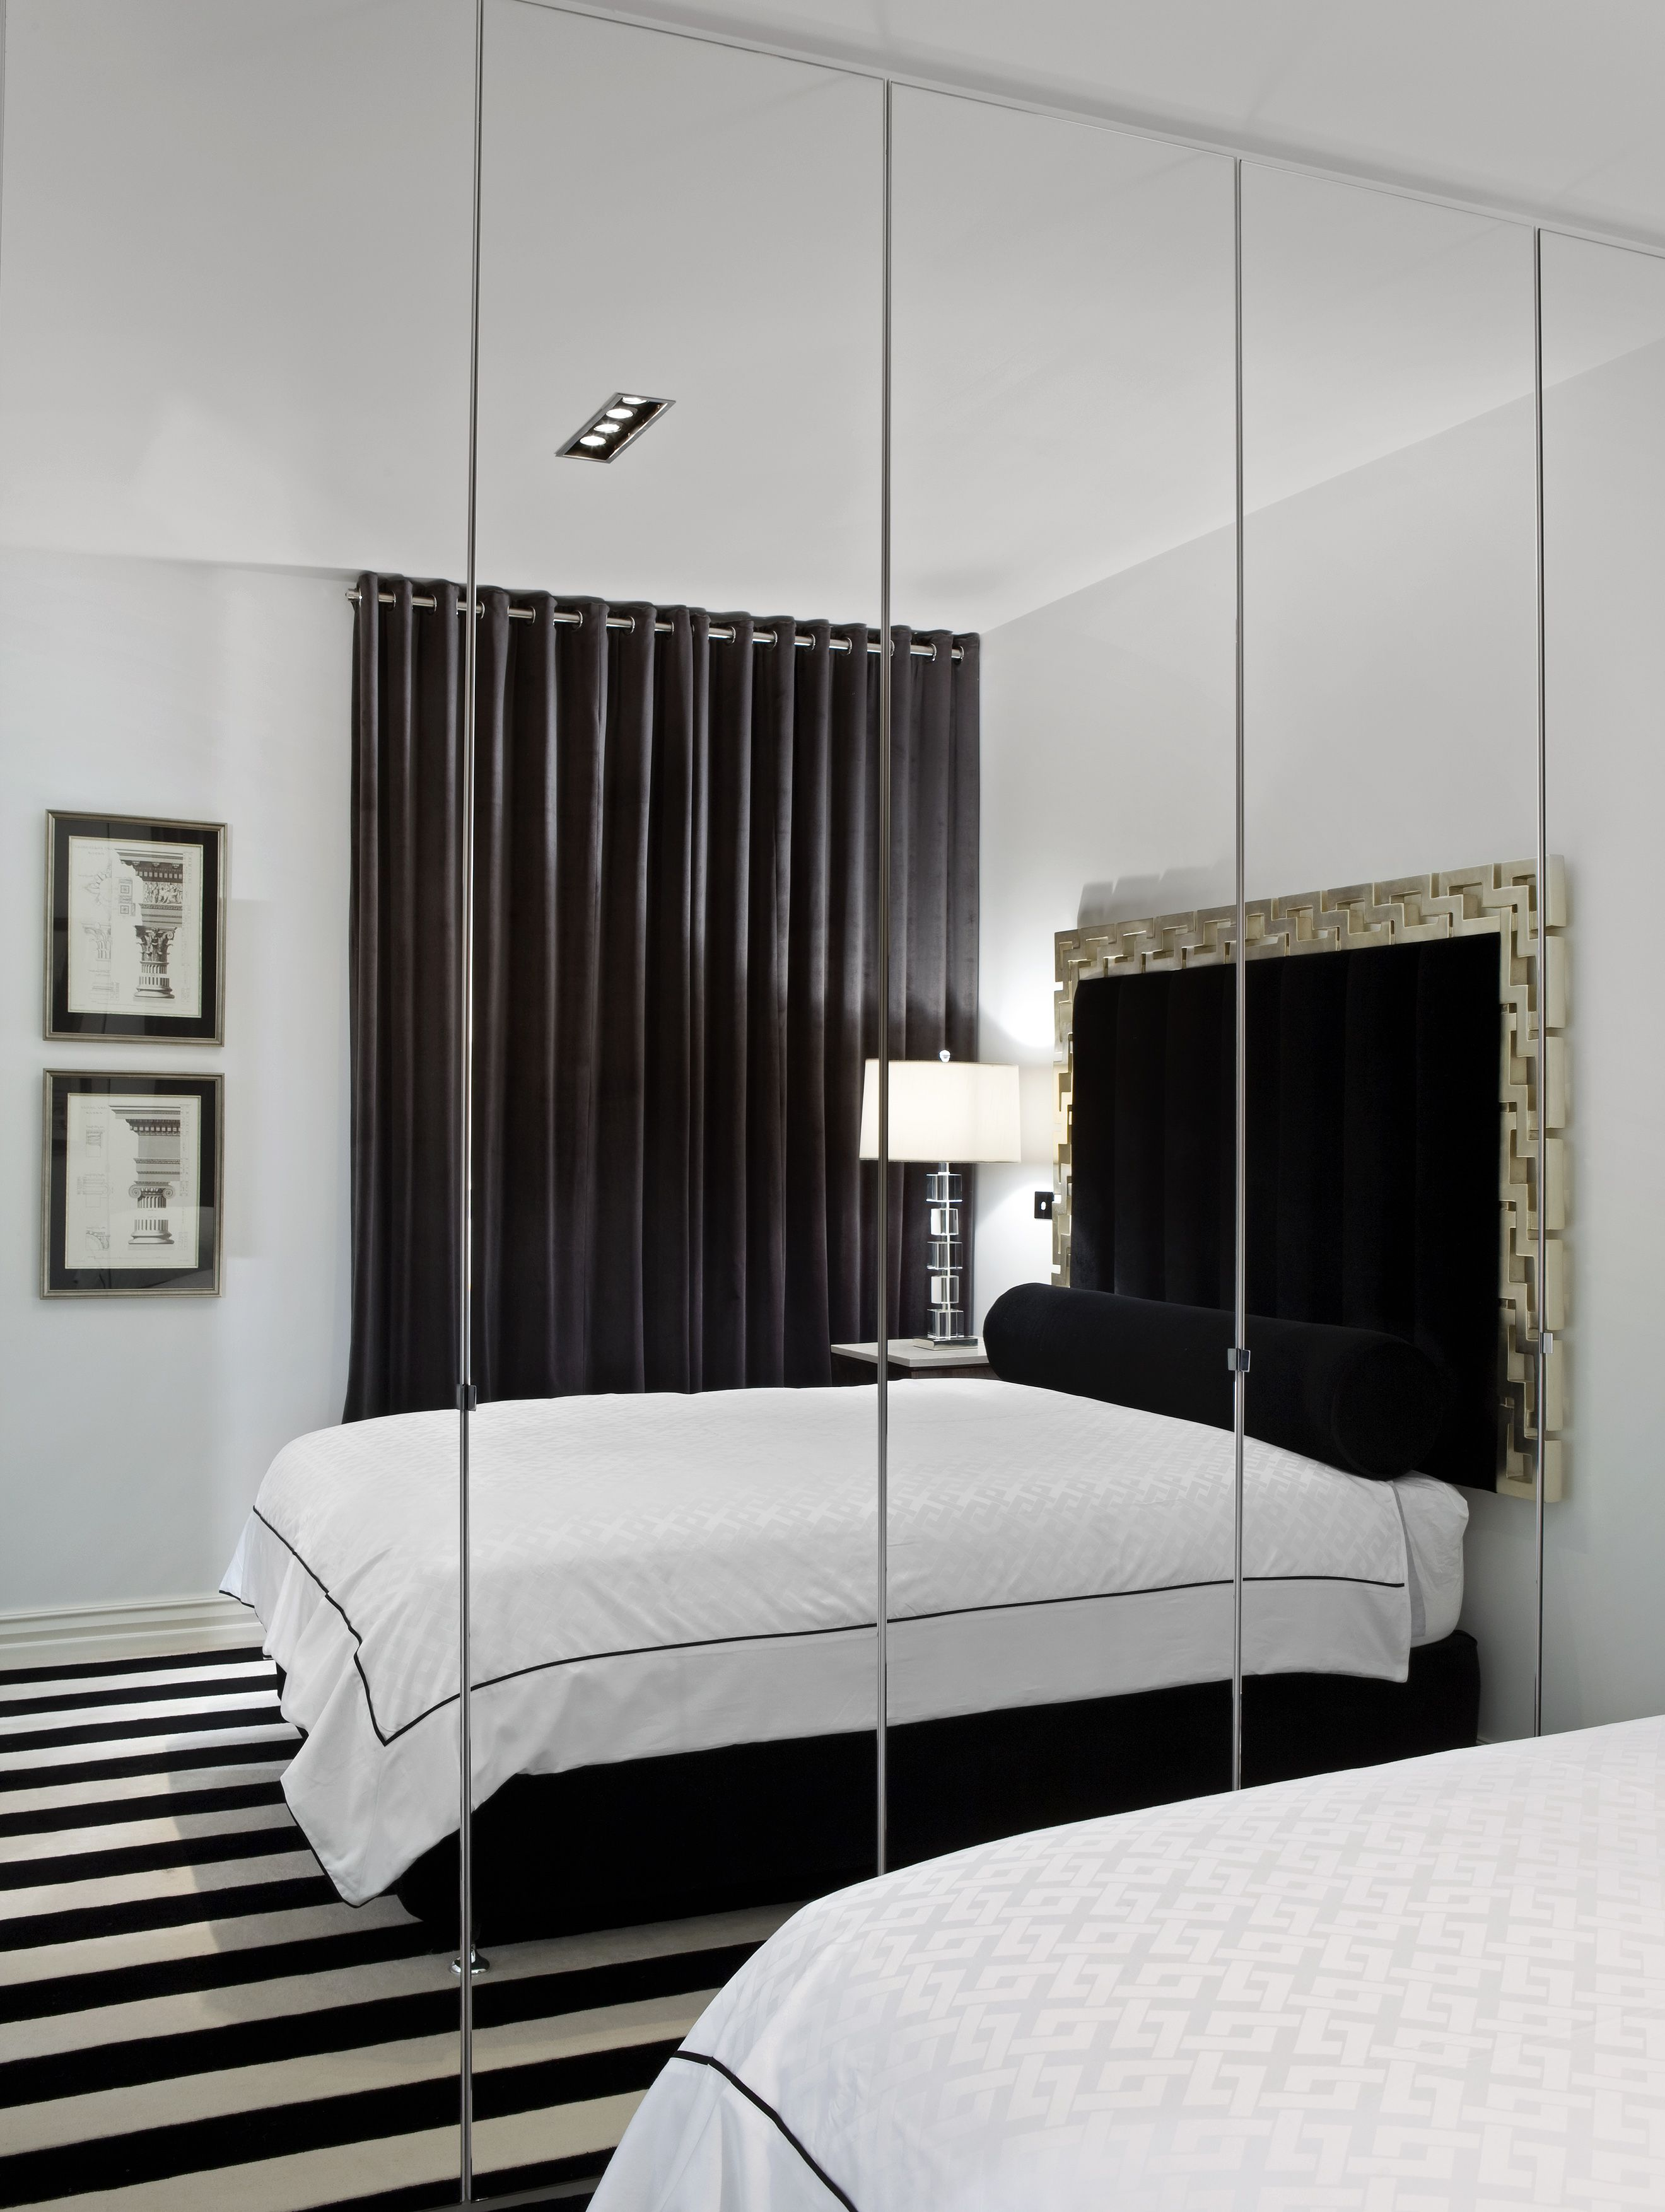 Mirror nightstands contemporary bedroom kimberley seldon design - Contemporary Bedroom By Jado Decor Pty Ltd Floor To Ceiling Mirrored Closet Doors Make A Small Bedroom Appear Much Larger